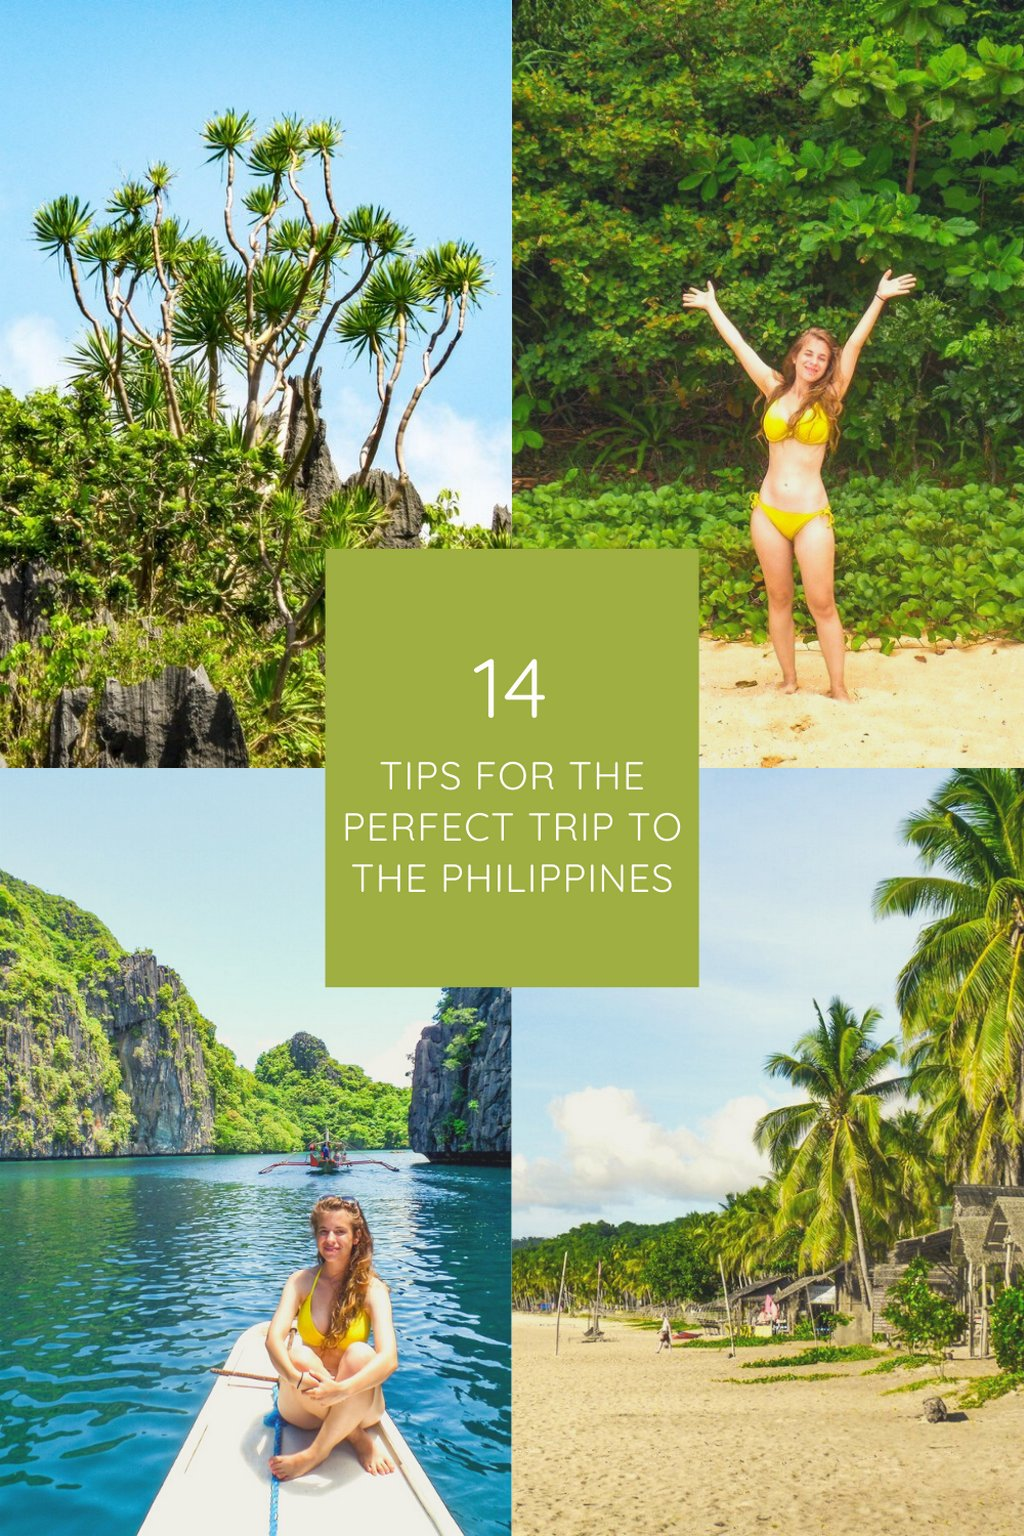 14 tips for the perfect trip to the Philippines, or: How you\'ll experience a much better trip than I have!